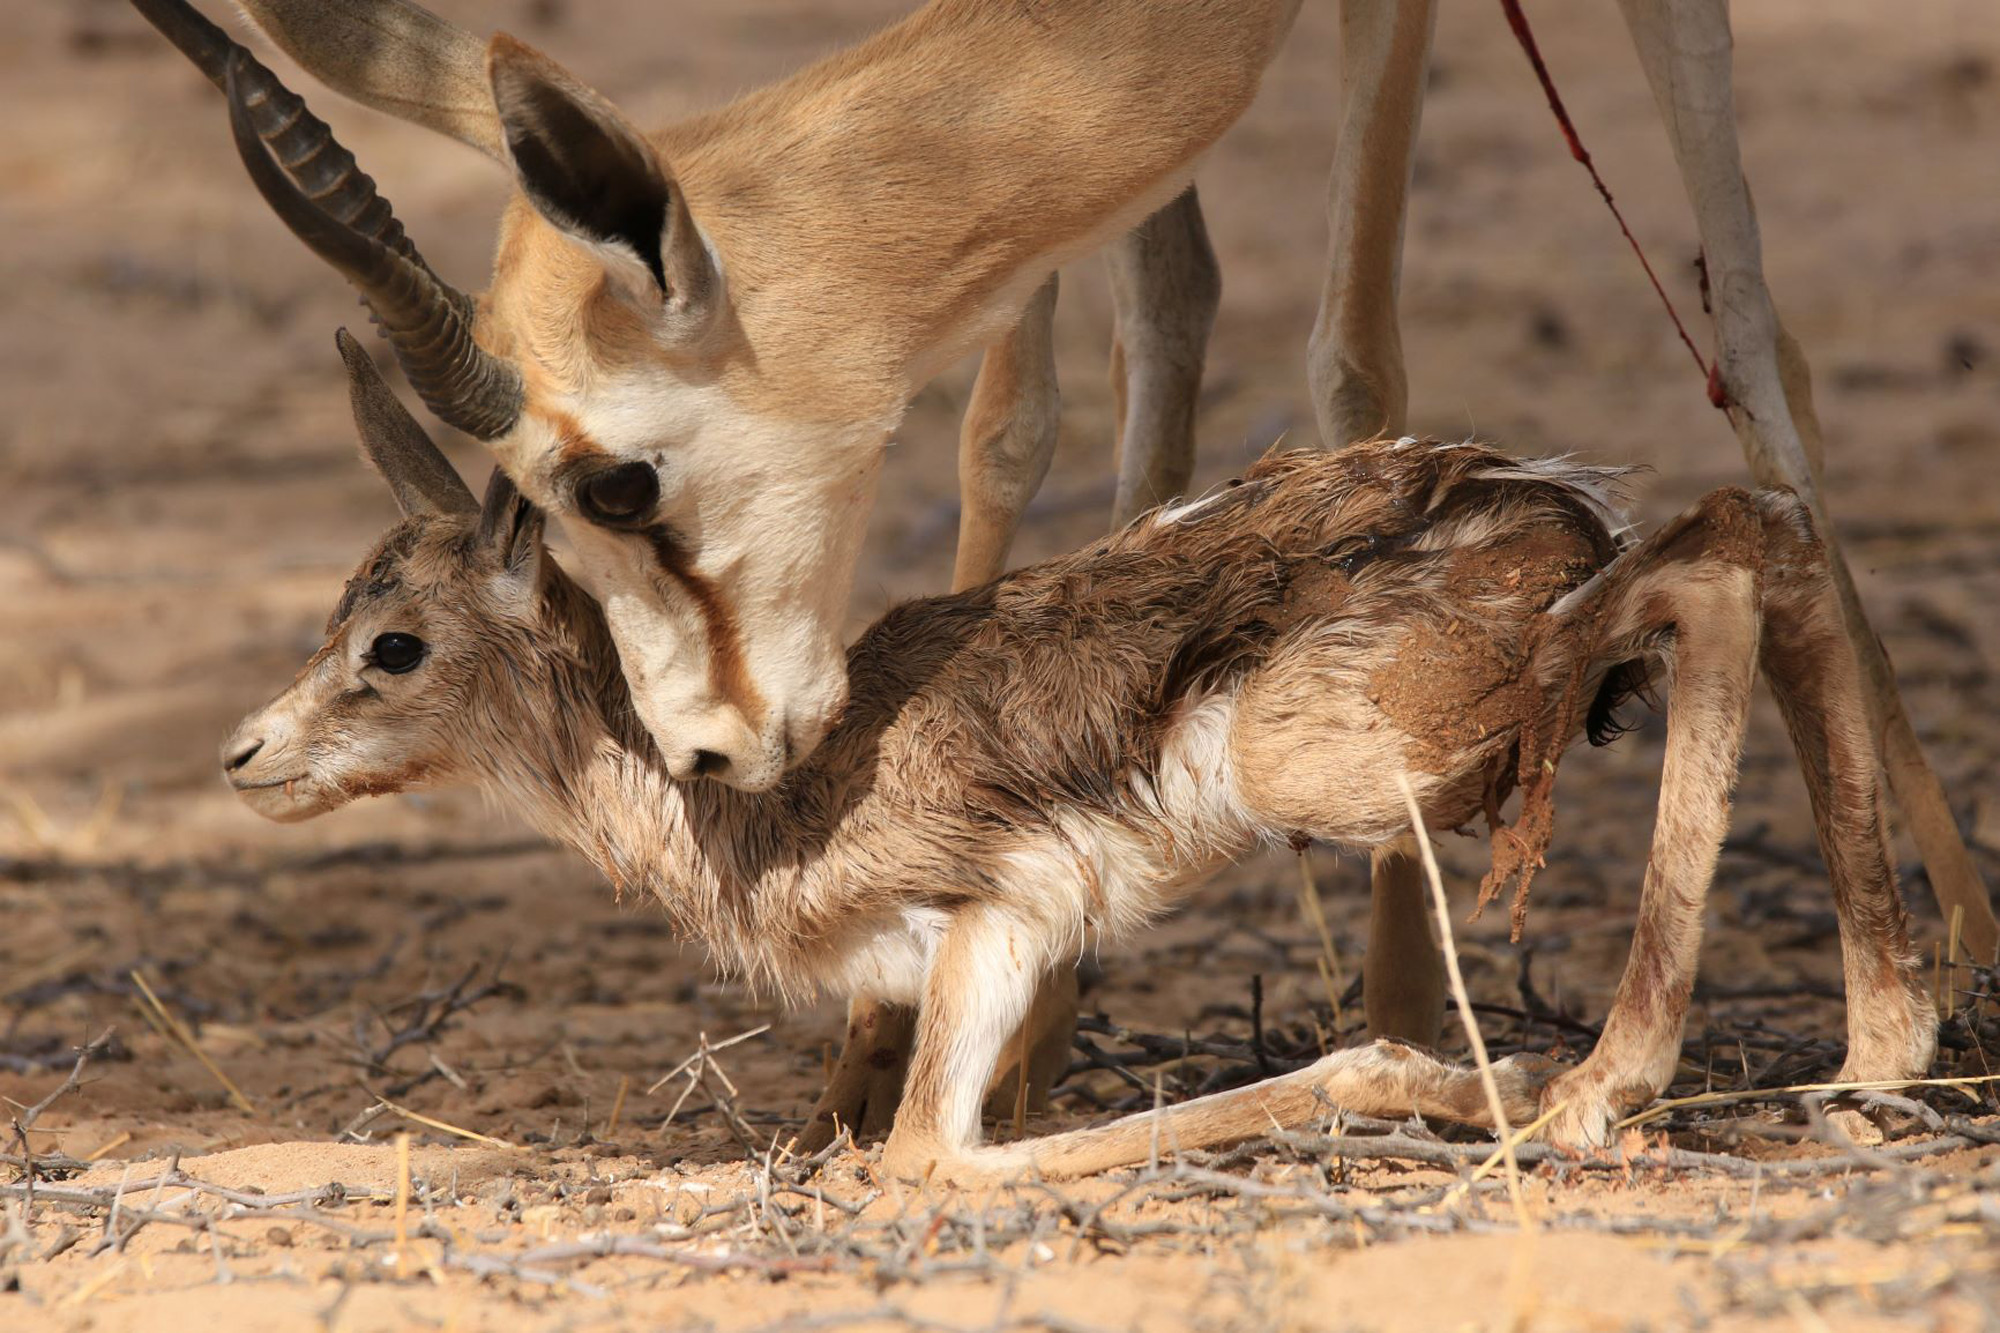 A mother springbok nuzzles her newborn in Kgalagadi Transfrontier Park, South Africa